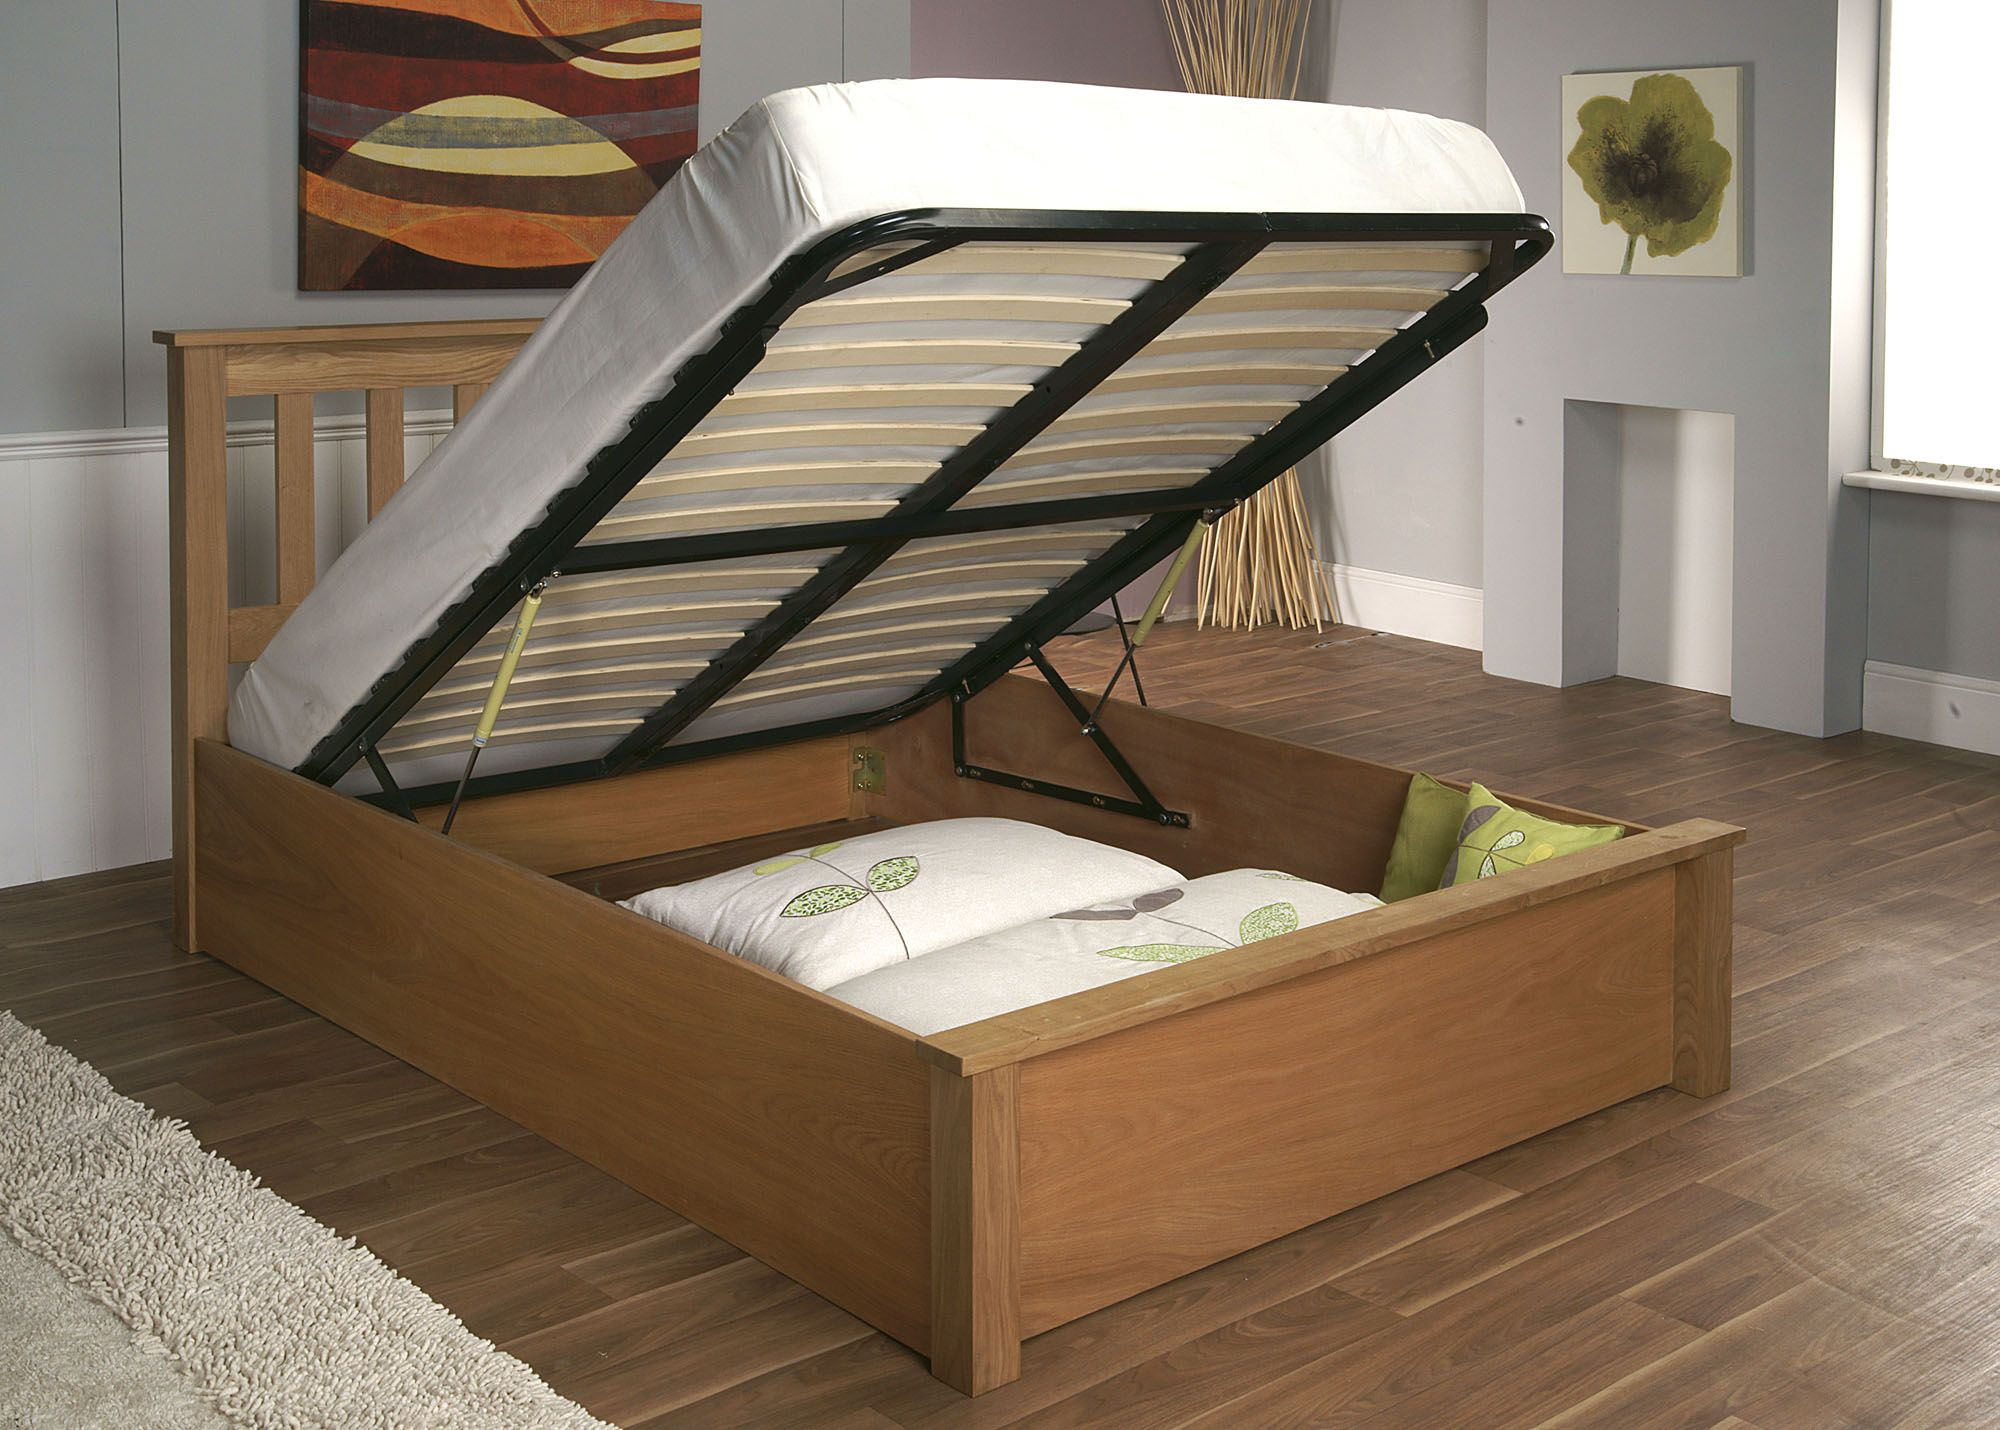 Bed frame design ideas - Twin Wood Bed Frame With Multipurpose Storage Under The Mattress Design Idea